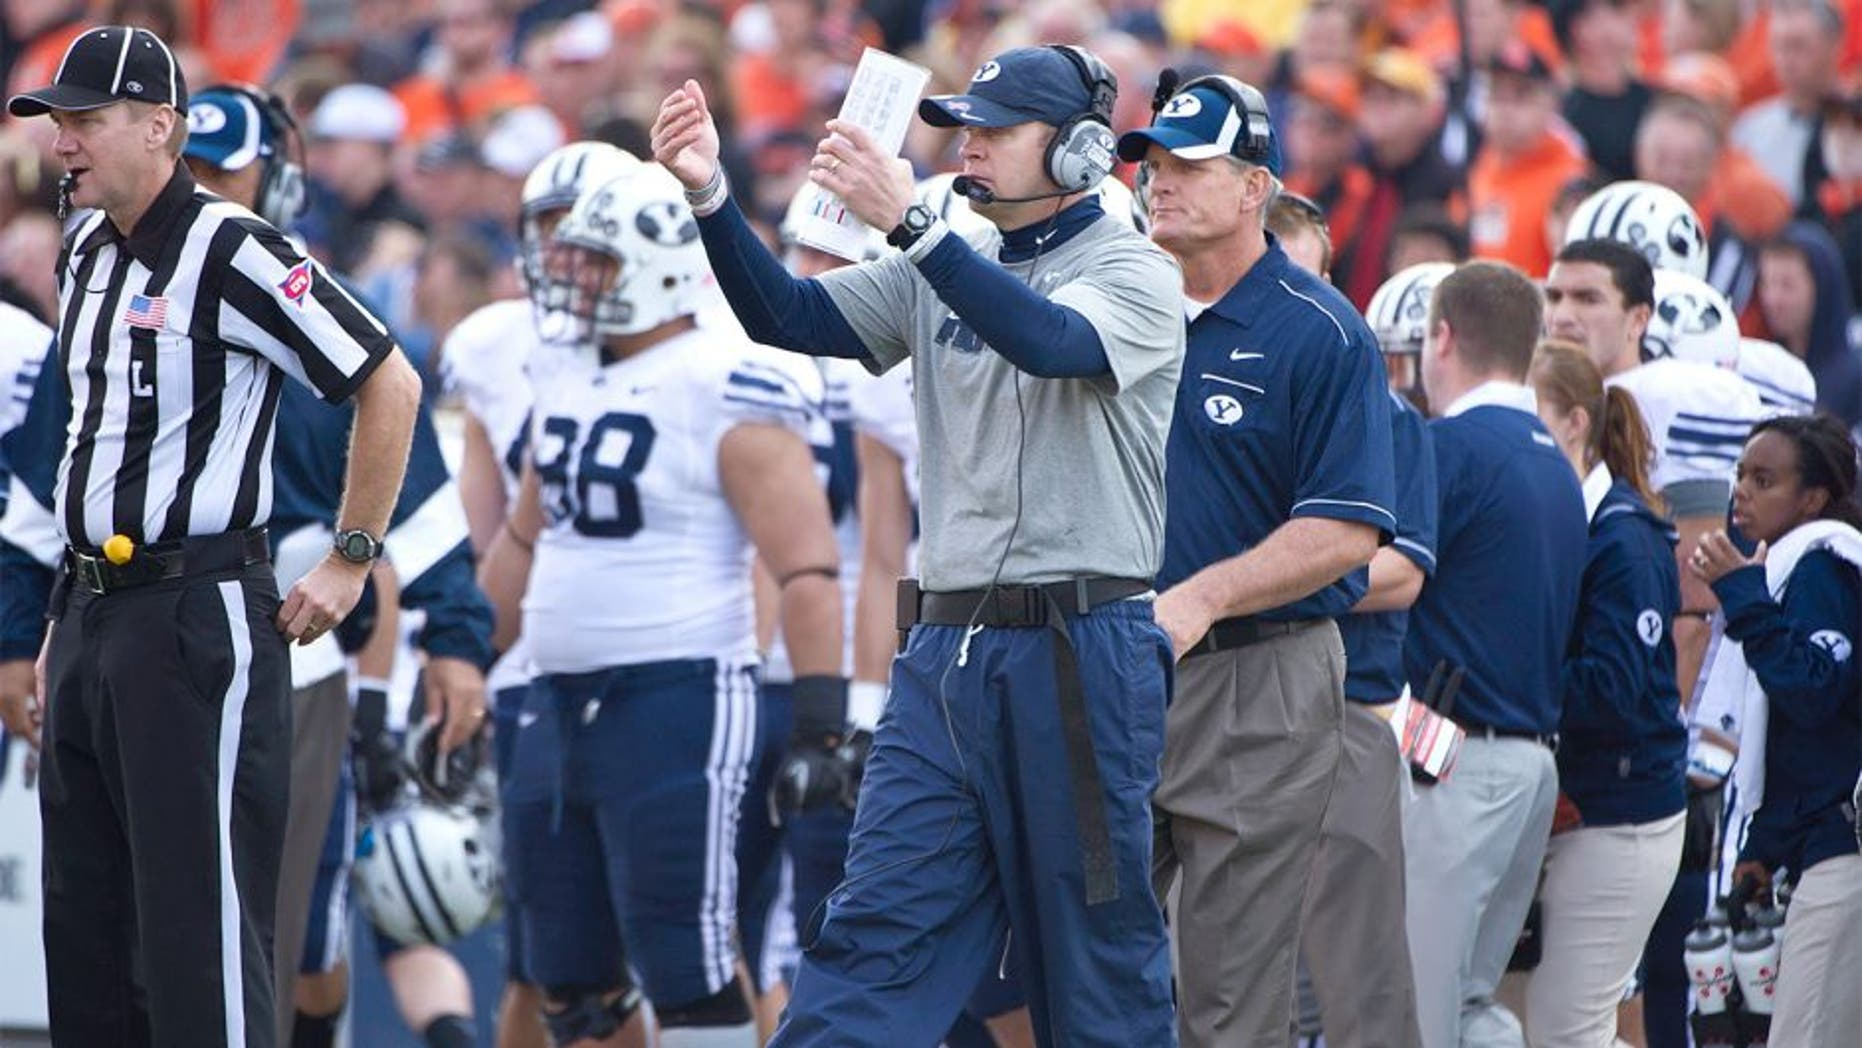 Oct 15, 2011; Corvallis, OR, USA; Brigham Young Cougars head coach Bronco Mendenhall calls his team over during the second half against the Oregon State Beavers at Reser Stadium. Mandatory Credit: Jim Z. Rider-USA TODAY Sports.